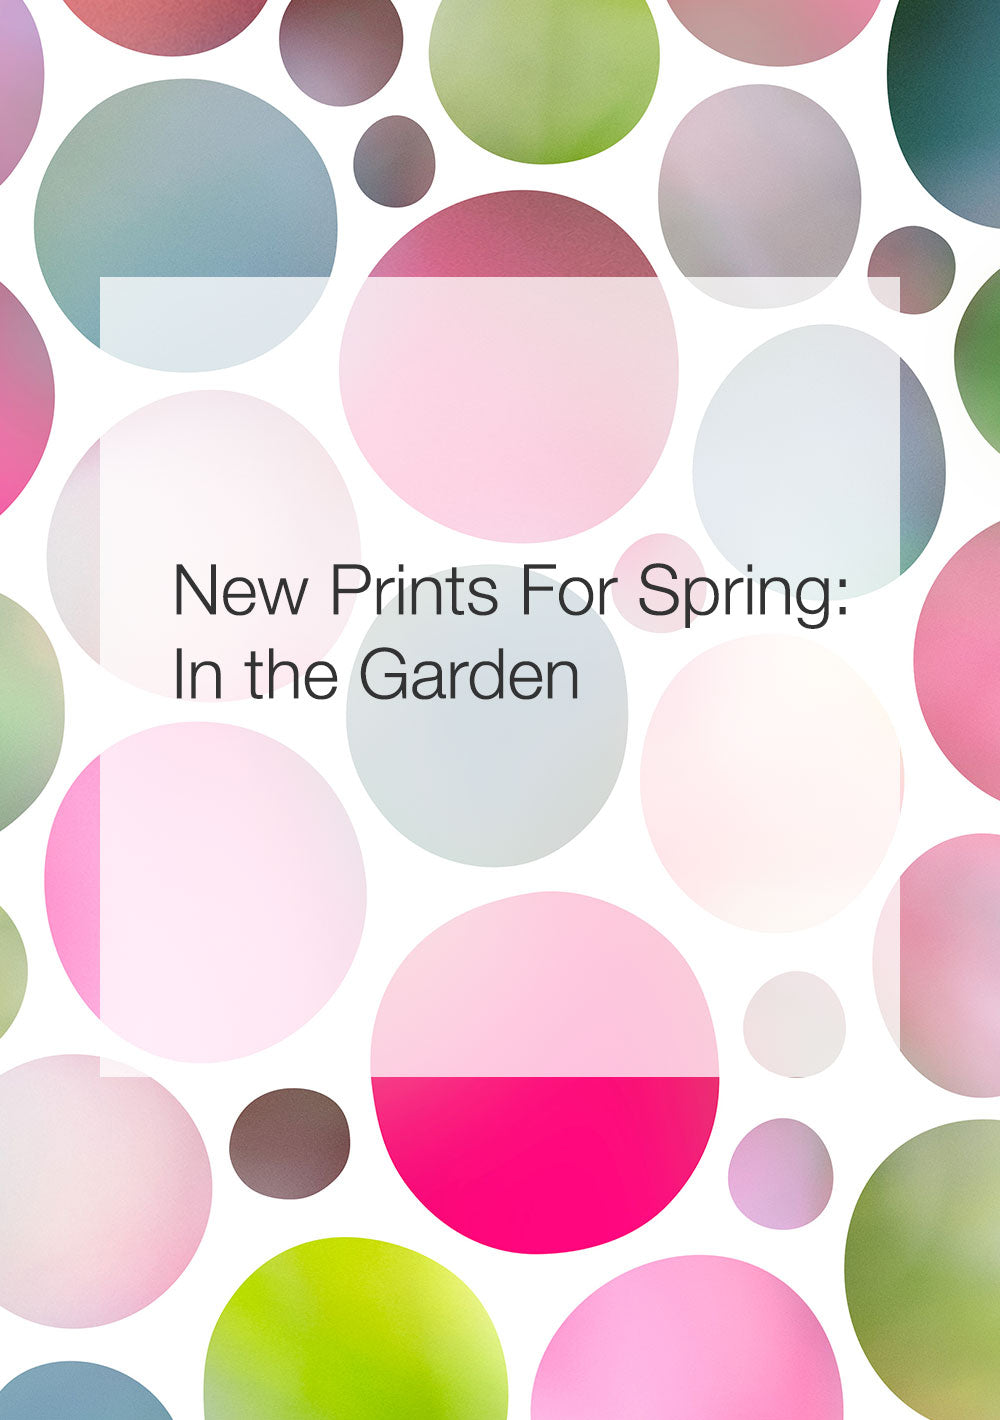 New Prints for Spring: In the Garden